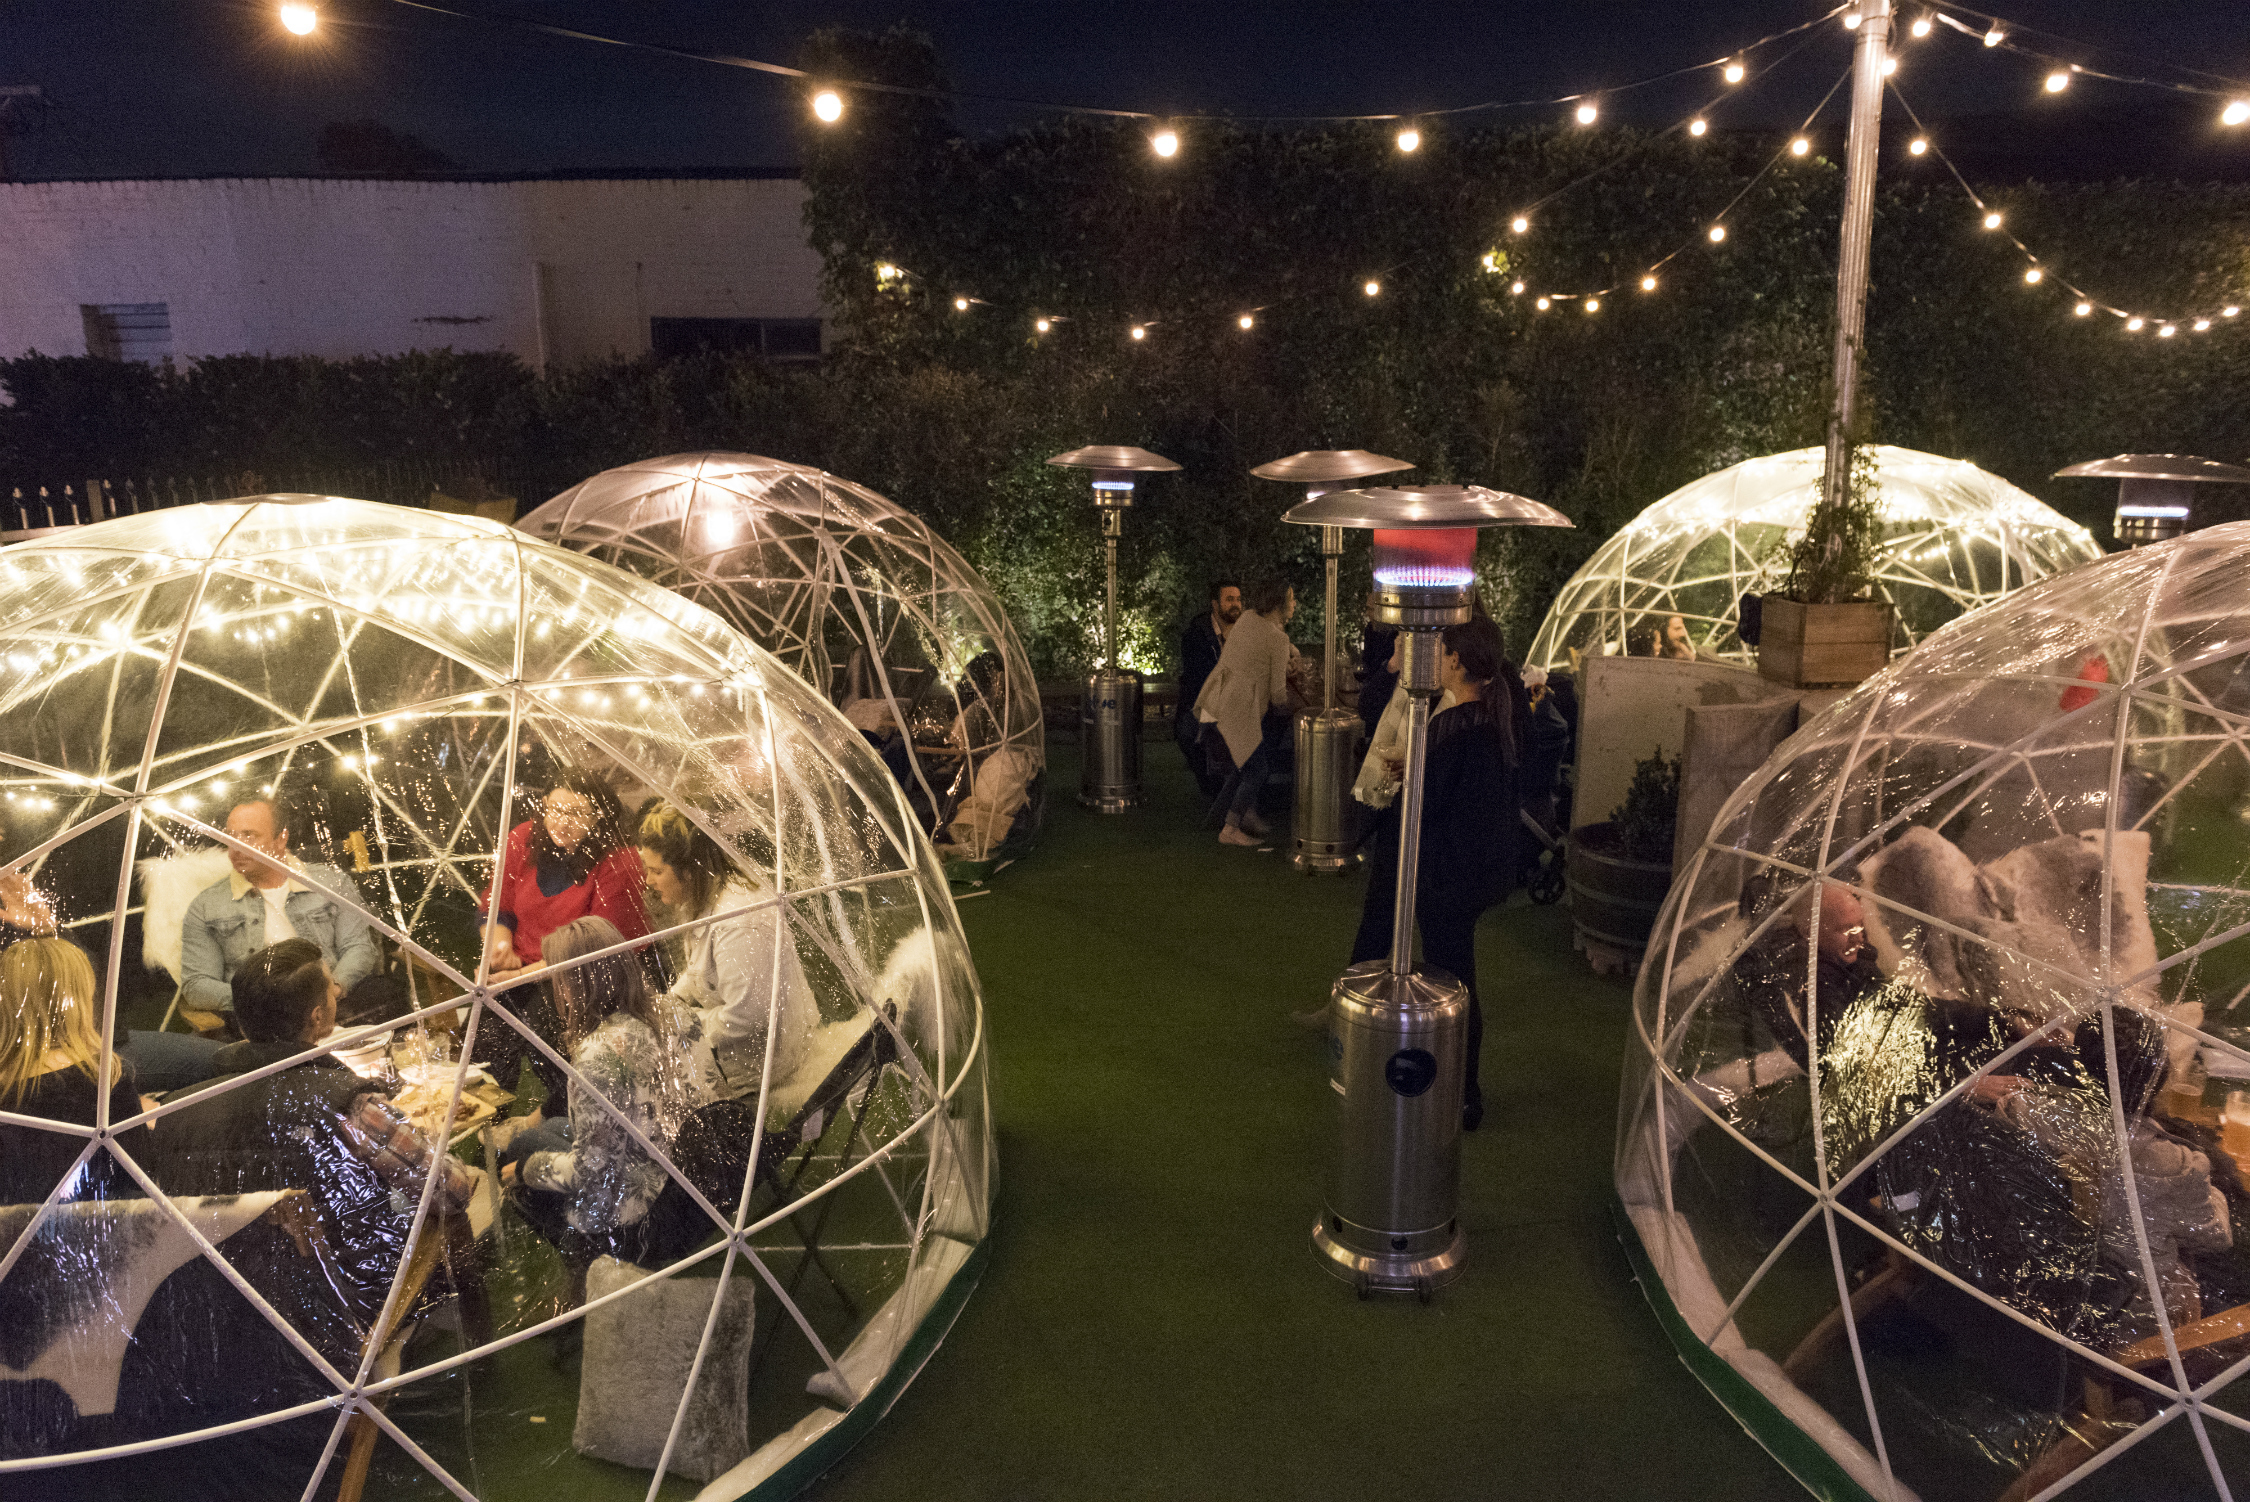 Cosy igloos are popping up at this Melbourne pub for winter